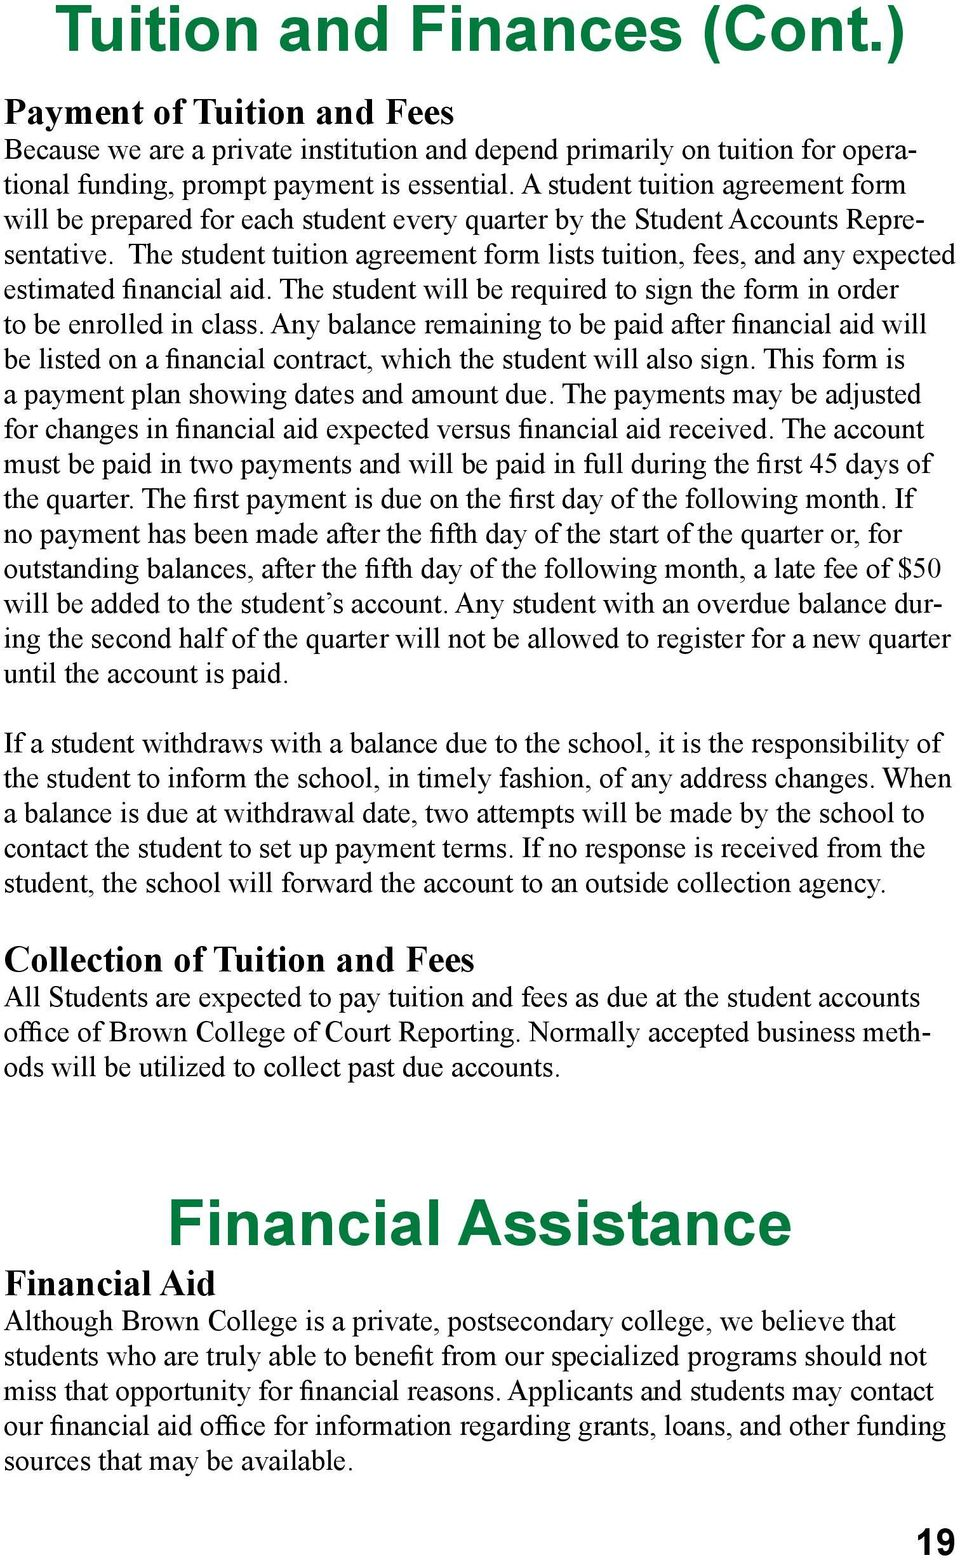 The student tuition agreement form lists tuition, fees, and any expected estimated financial aid. The student will be required to sign the form in order to be enrolled in class.